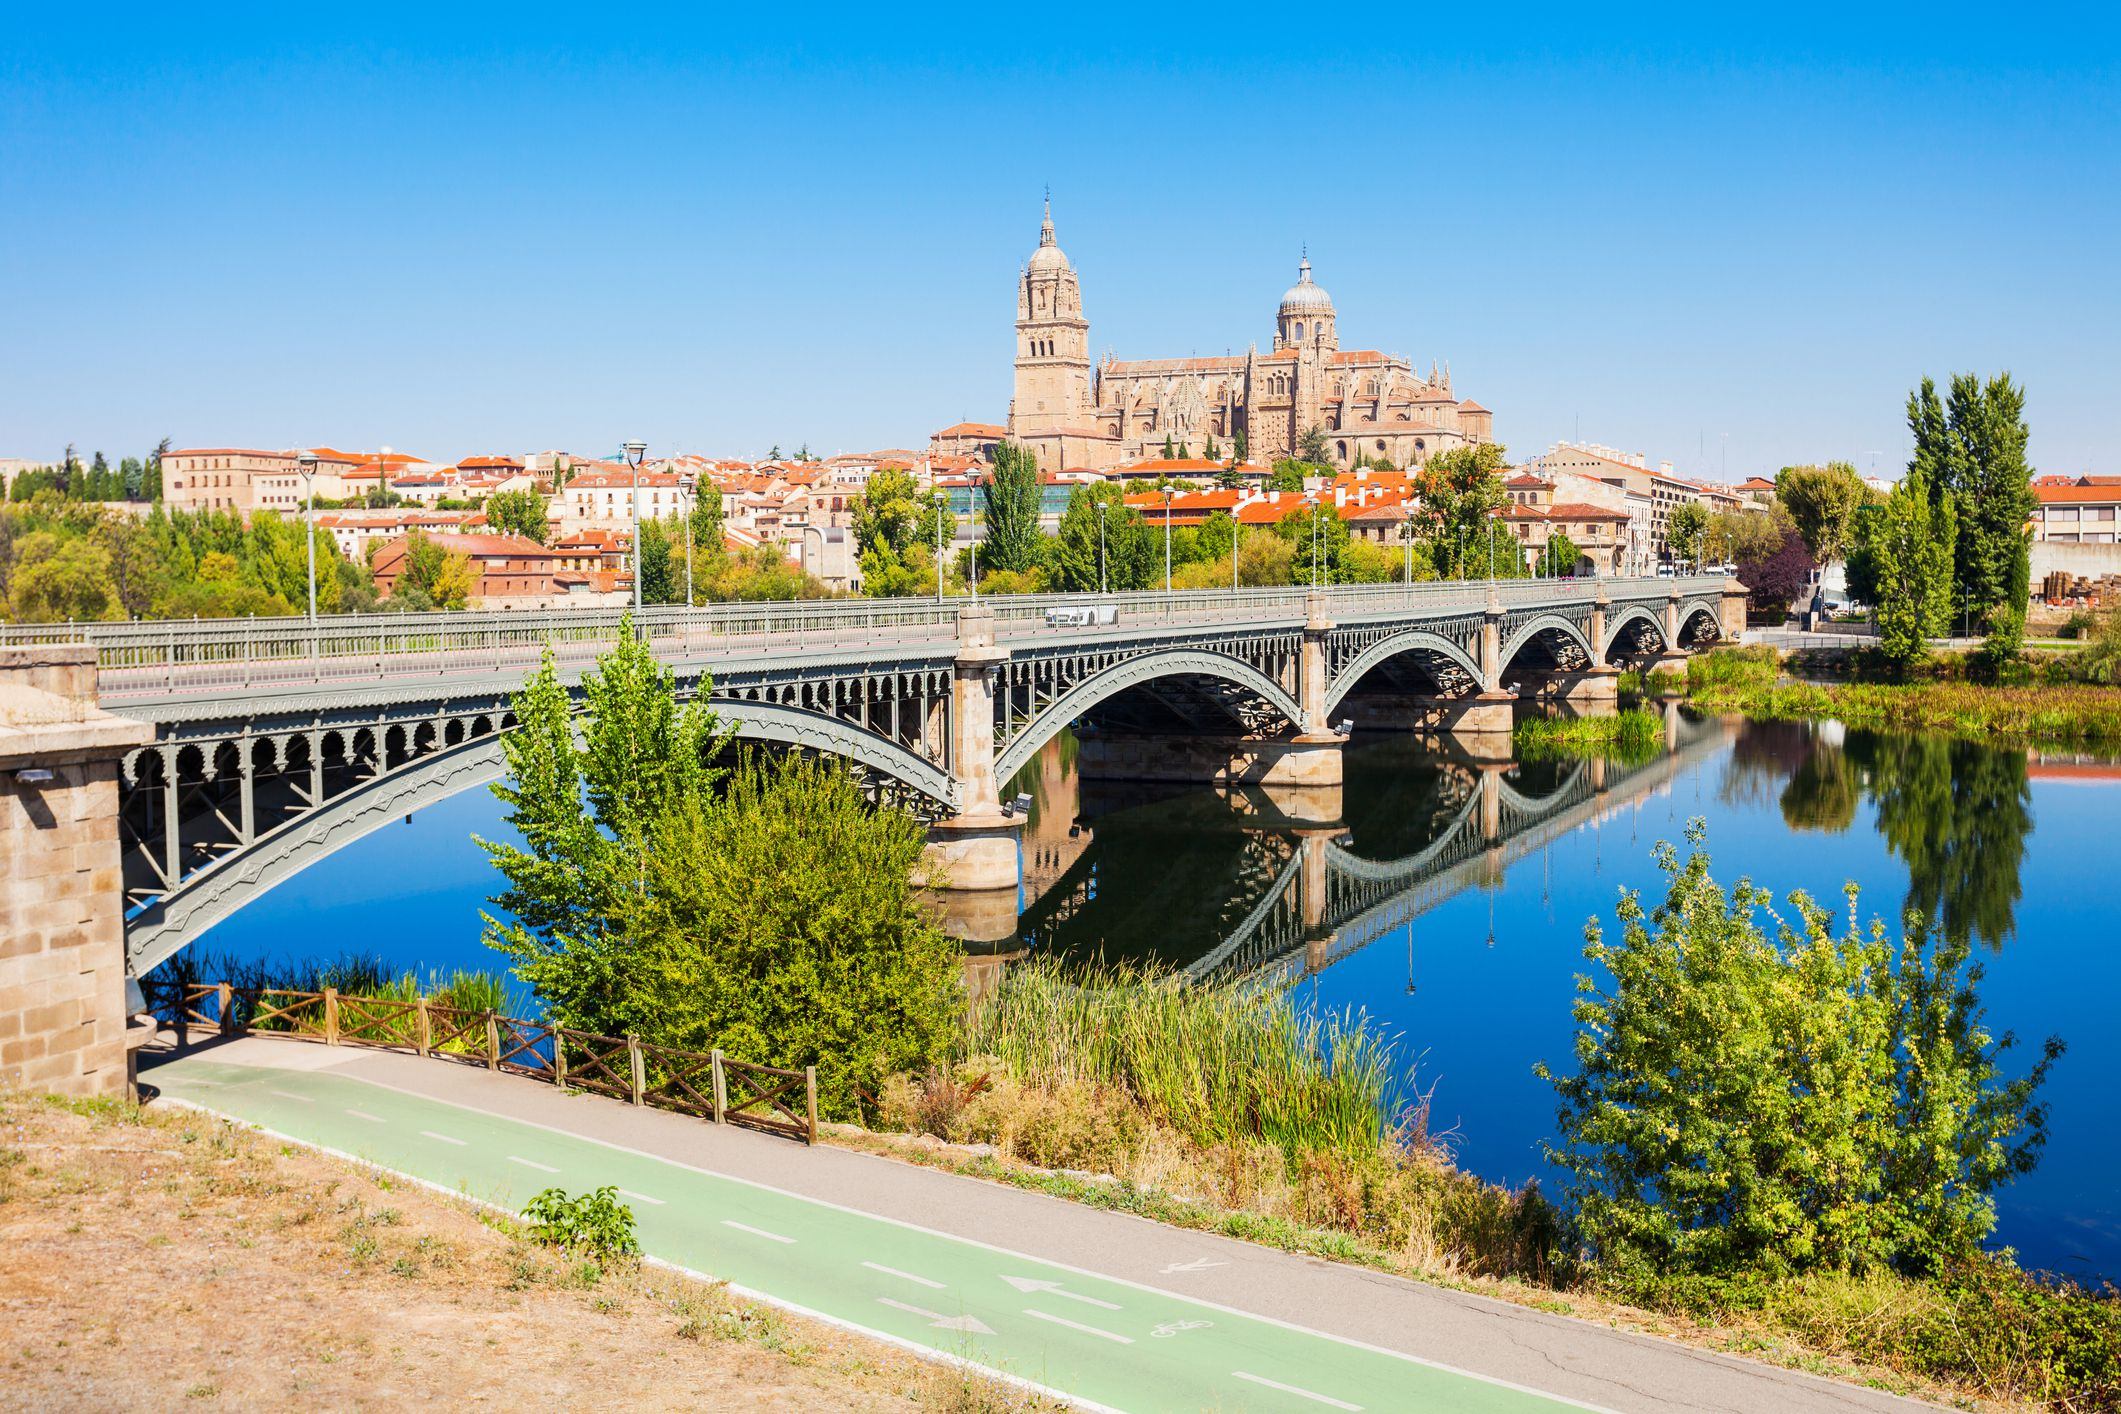 Salamanca Cathedral from a distance on a sunny day in Salamanca, Spain